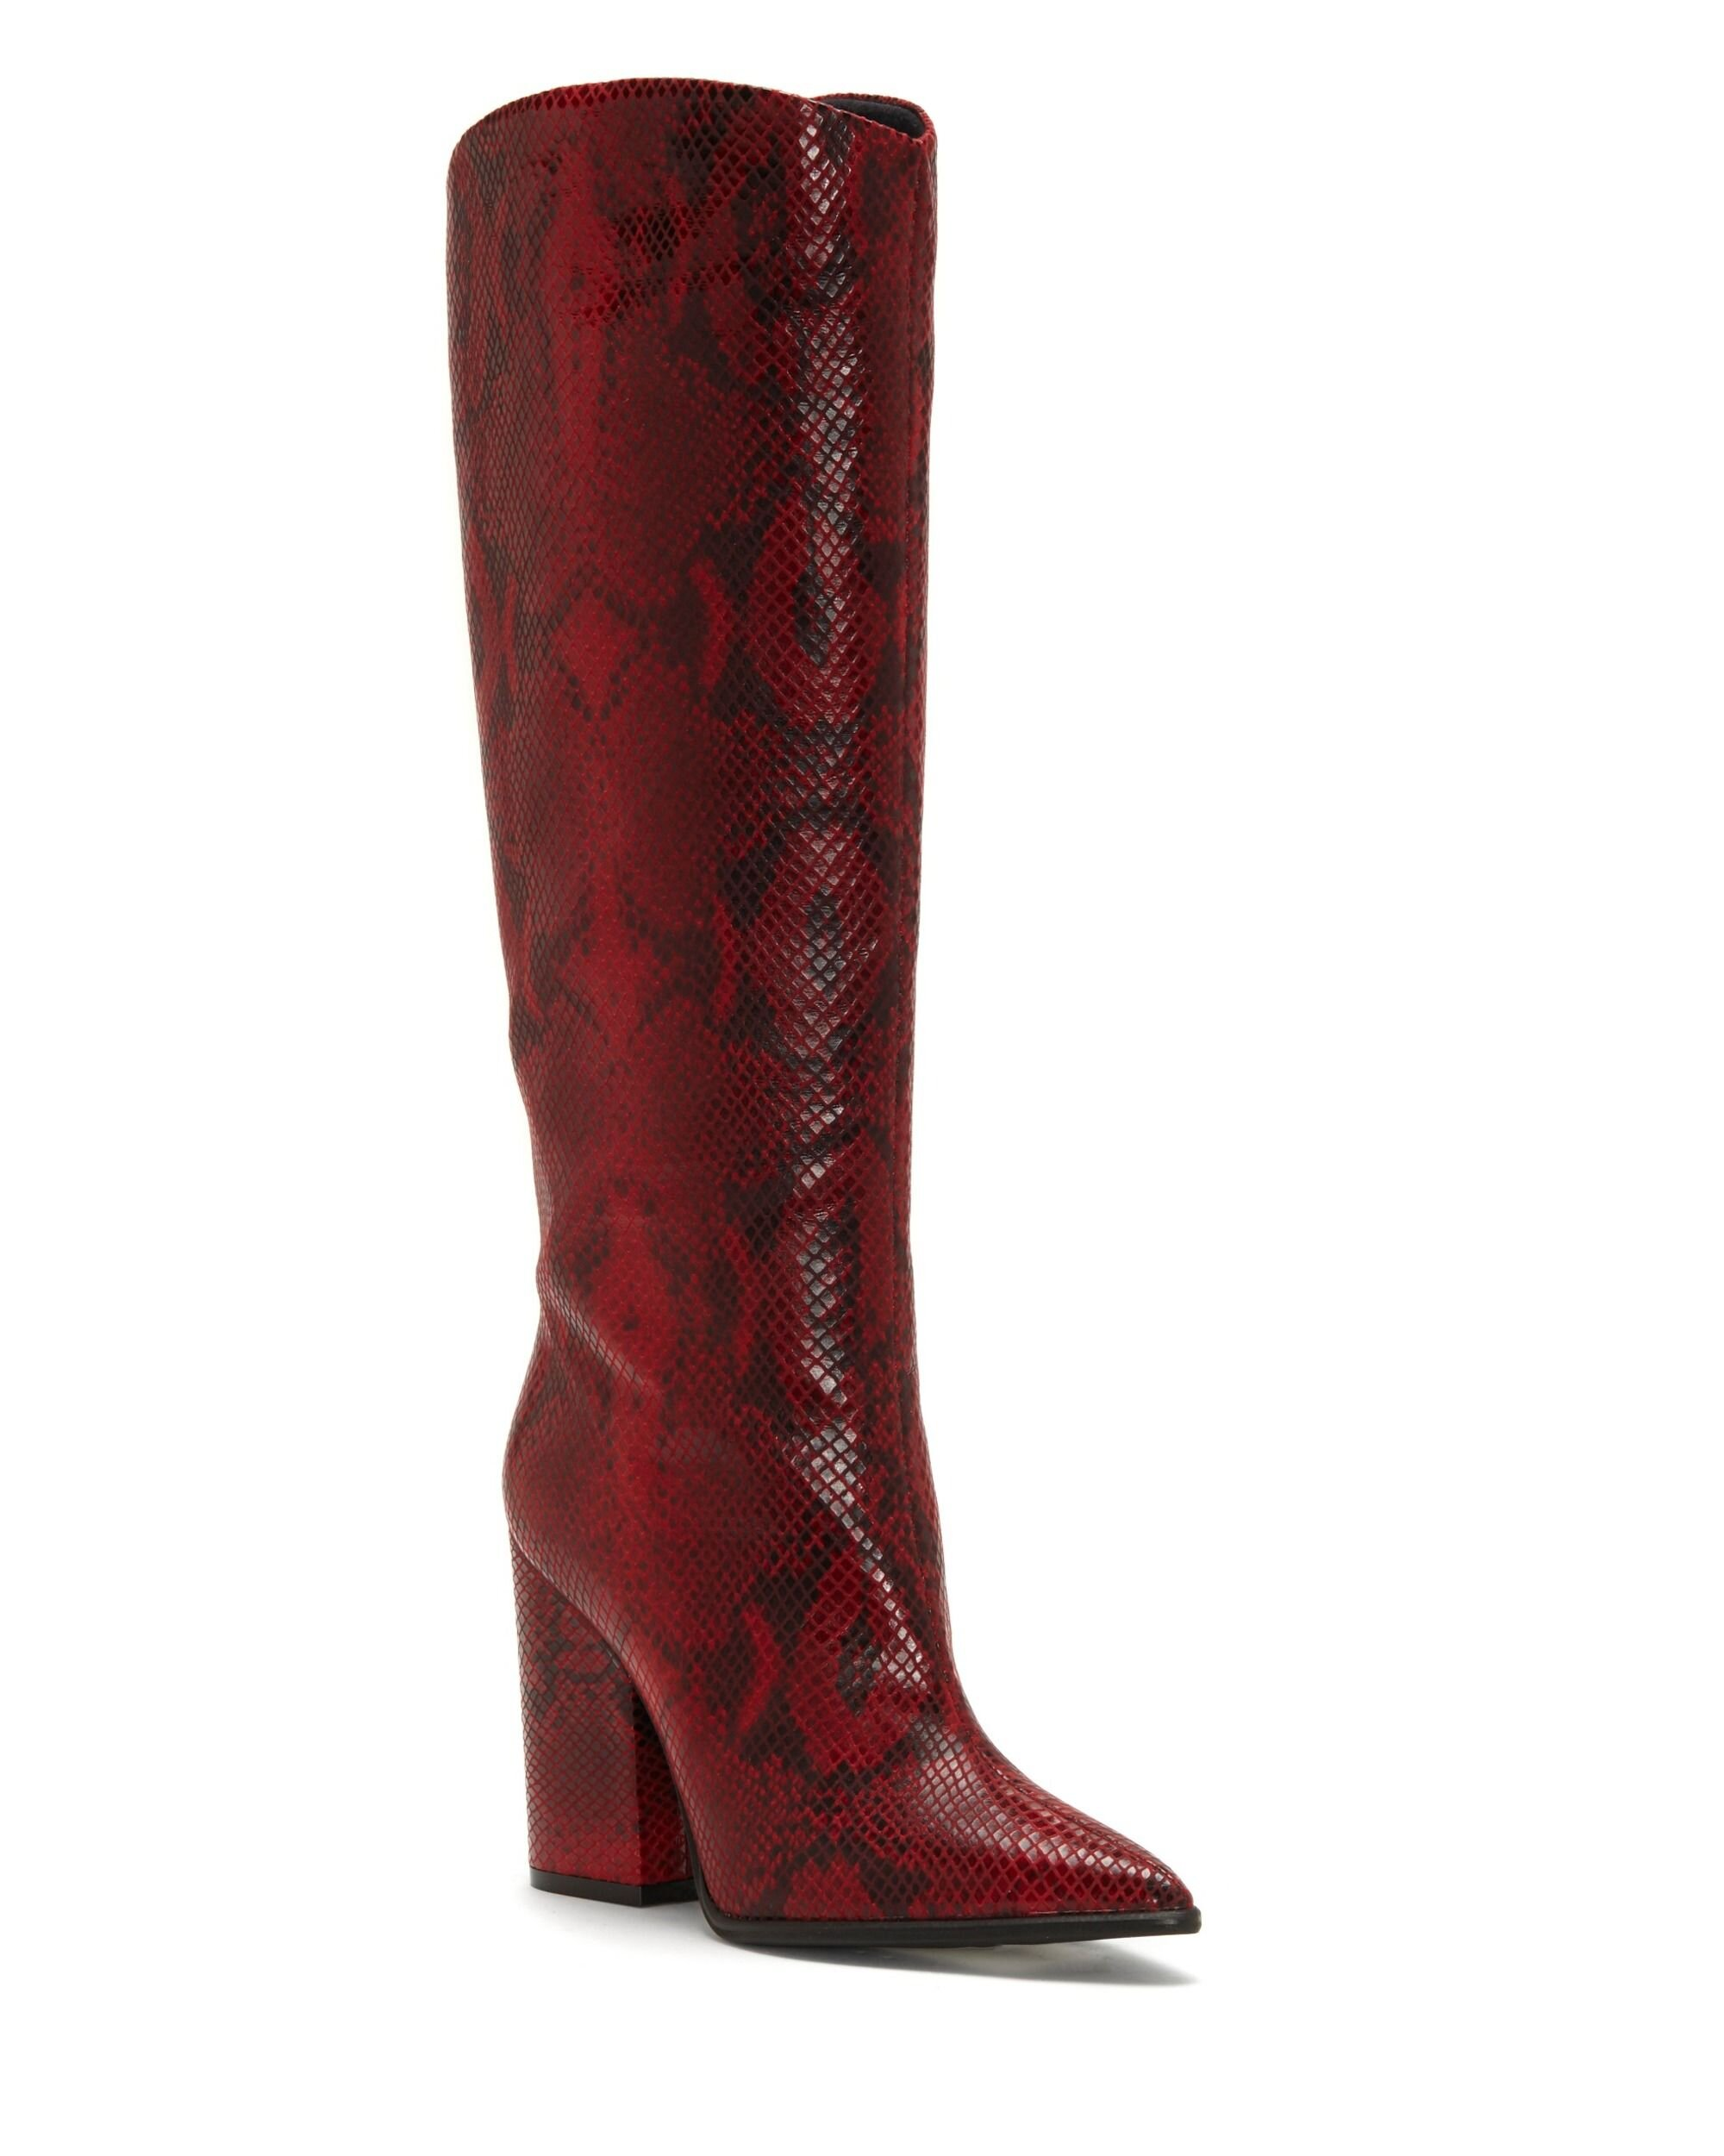 Red Knee High Boot - by Vince Camuto these boots are bad ***. I love the block heel and the pointy toe! These boots are perfect to wear with skirts and dresses.